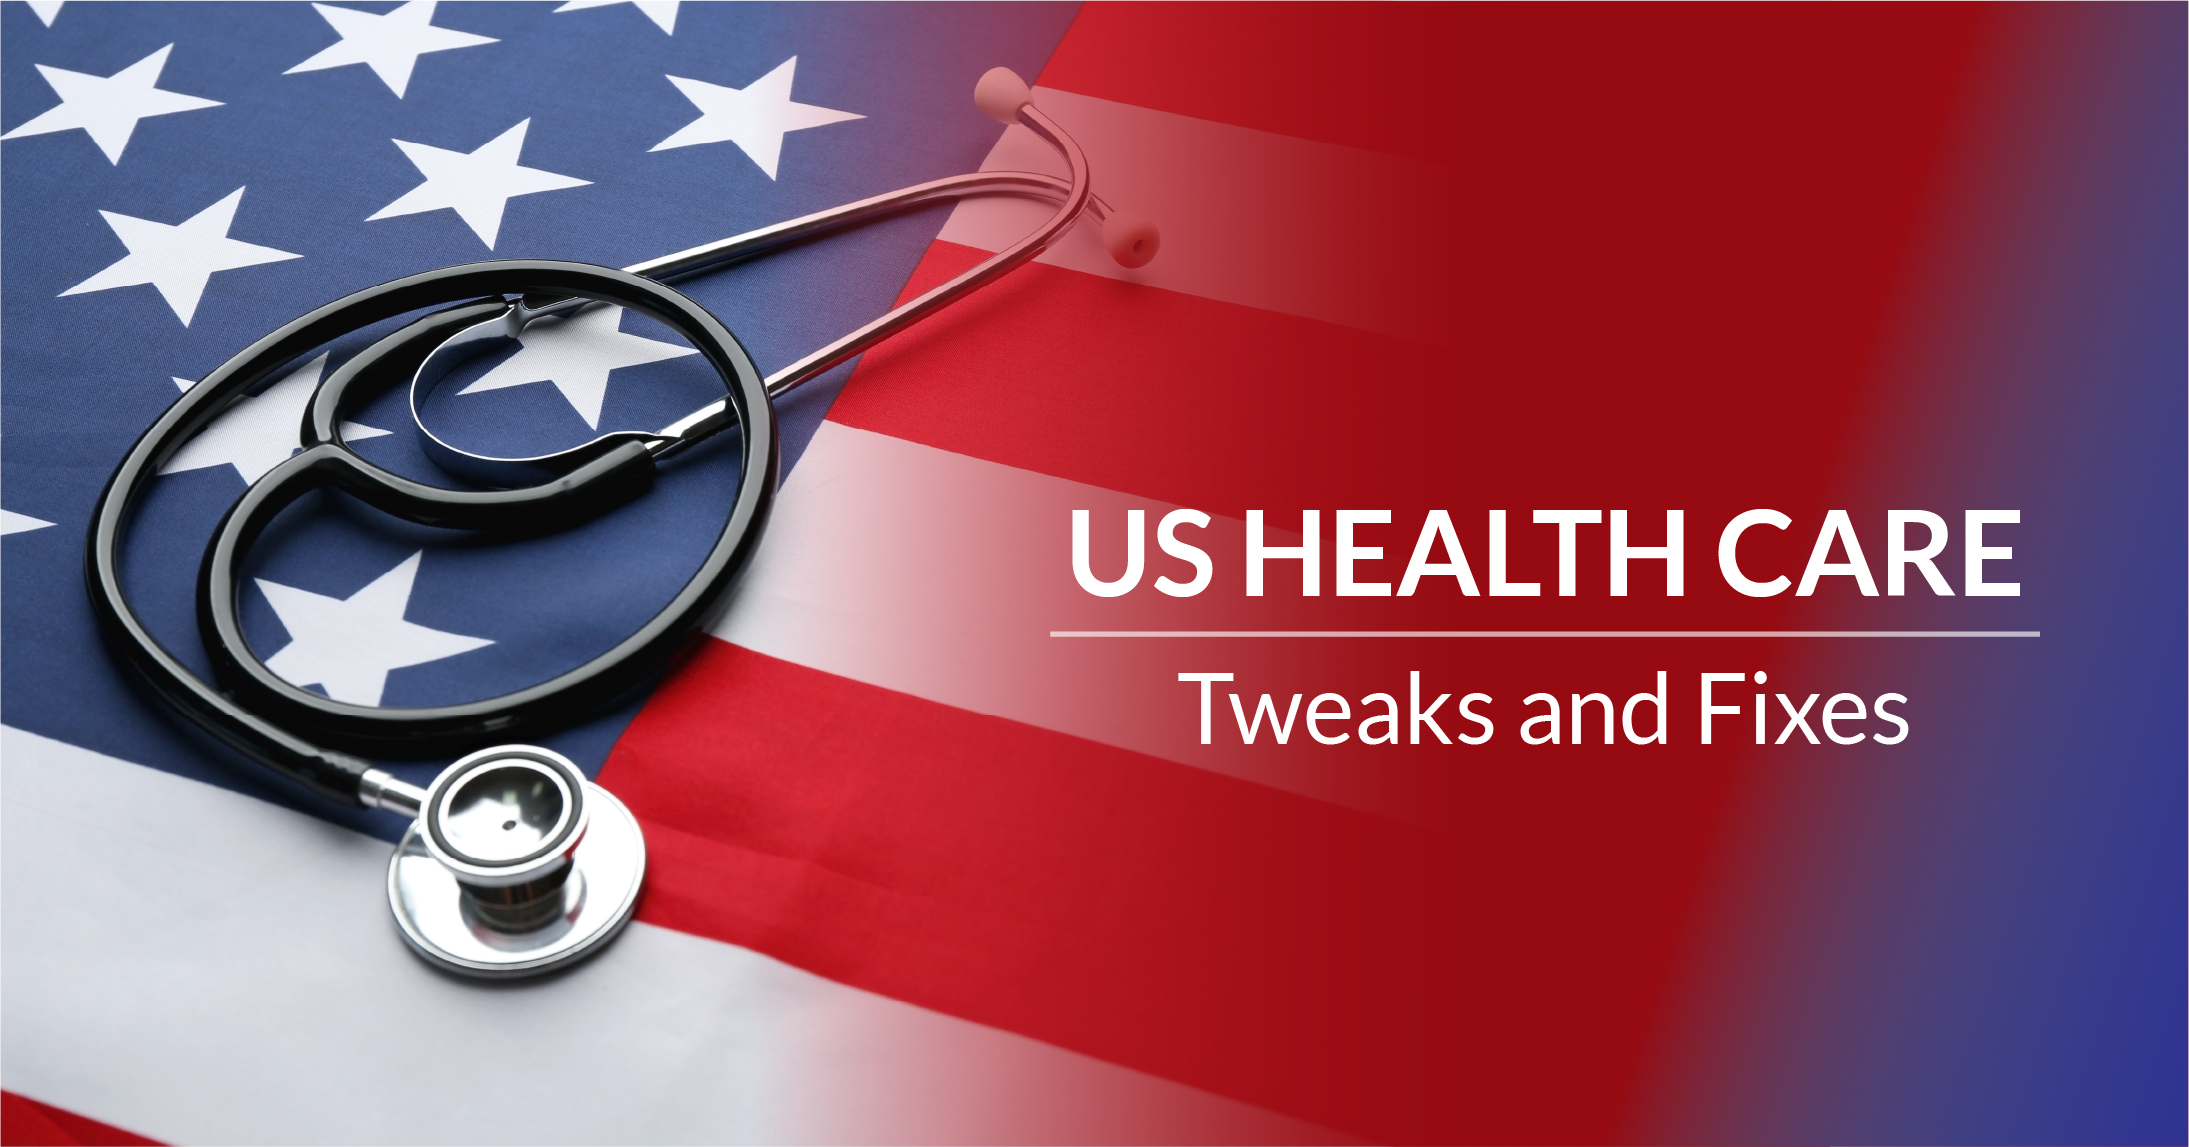 US Health Care: Tweaks and Fixes